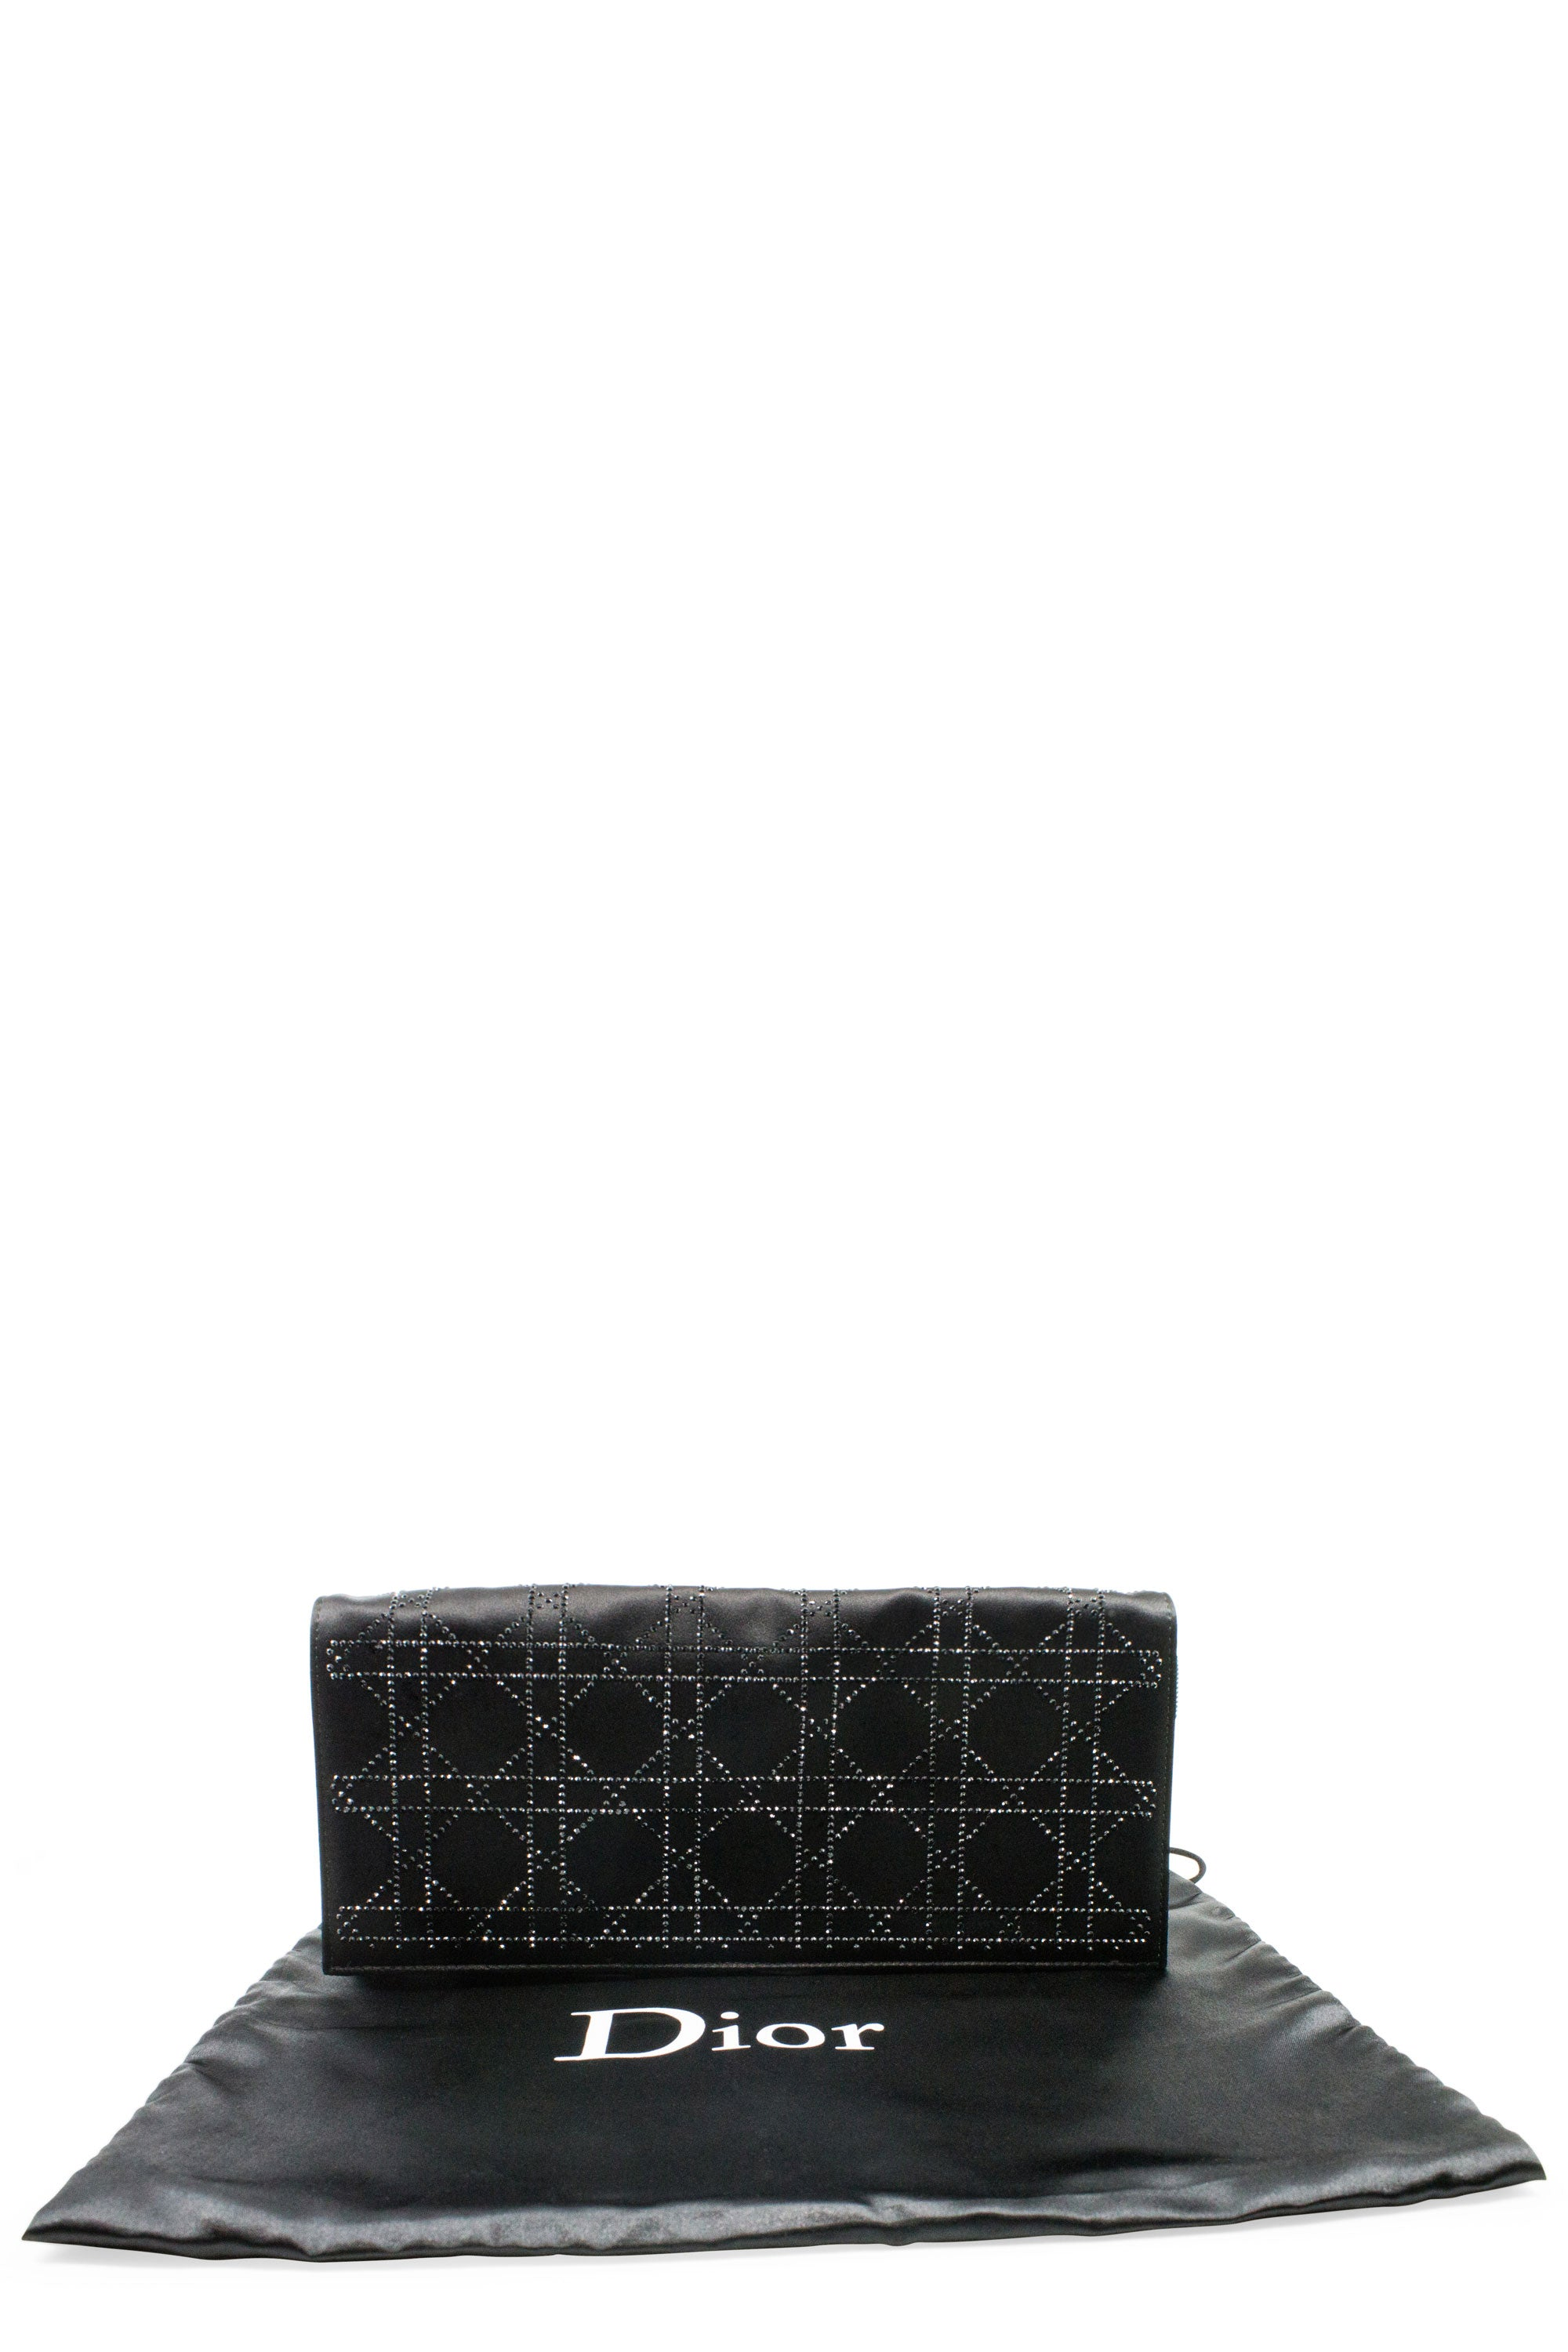 CHRISTIAN DIOR Cannage Satin Crystal Evening Clutch